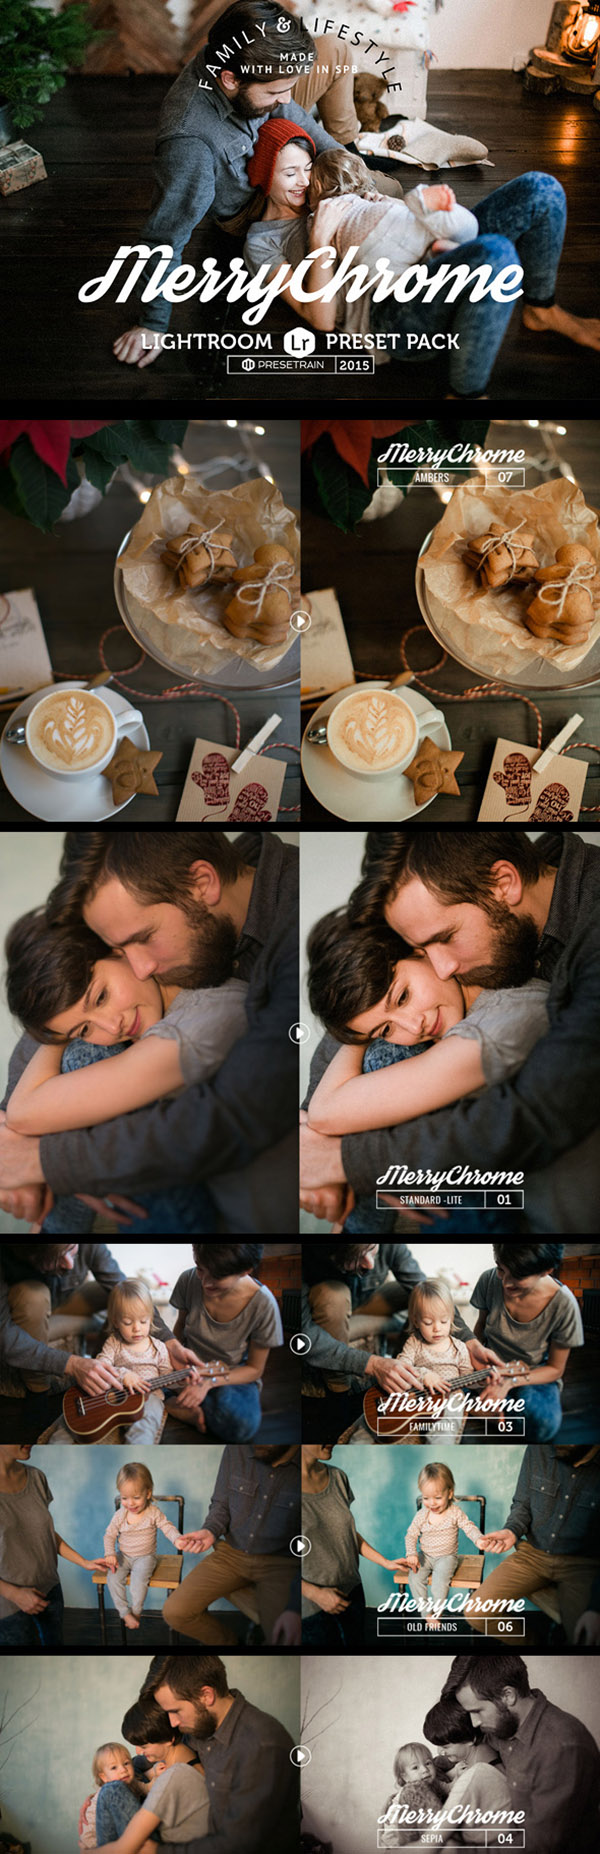 14 Merrychrome Lightroom Preset Pack